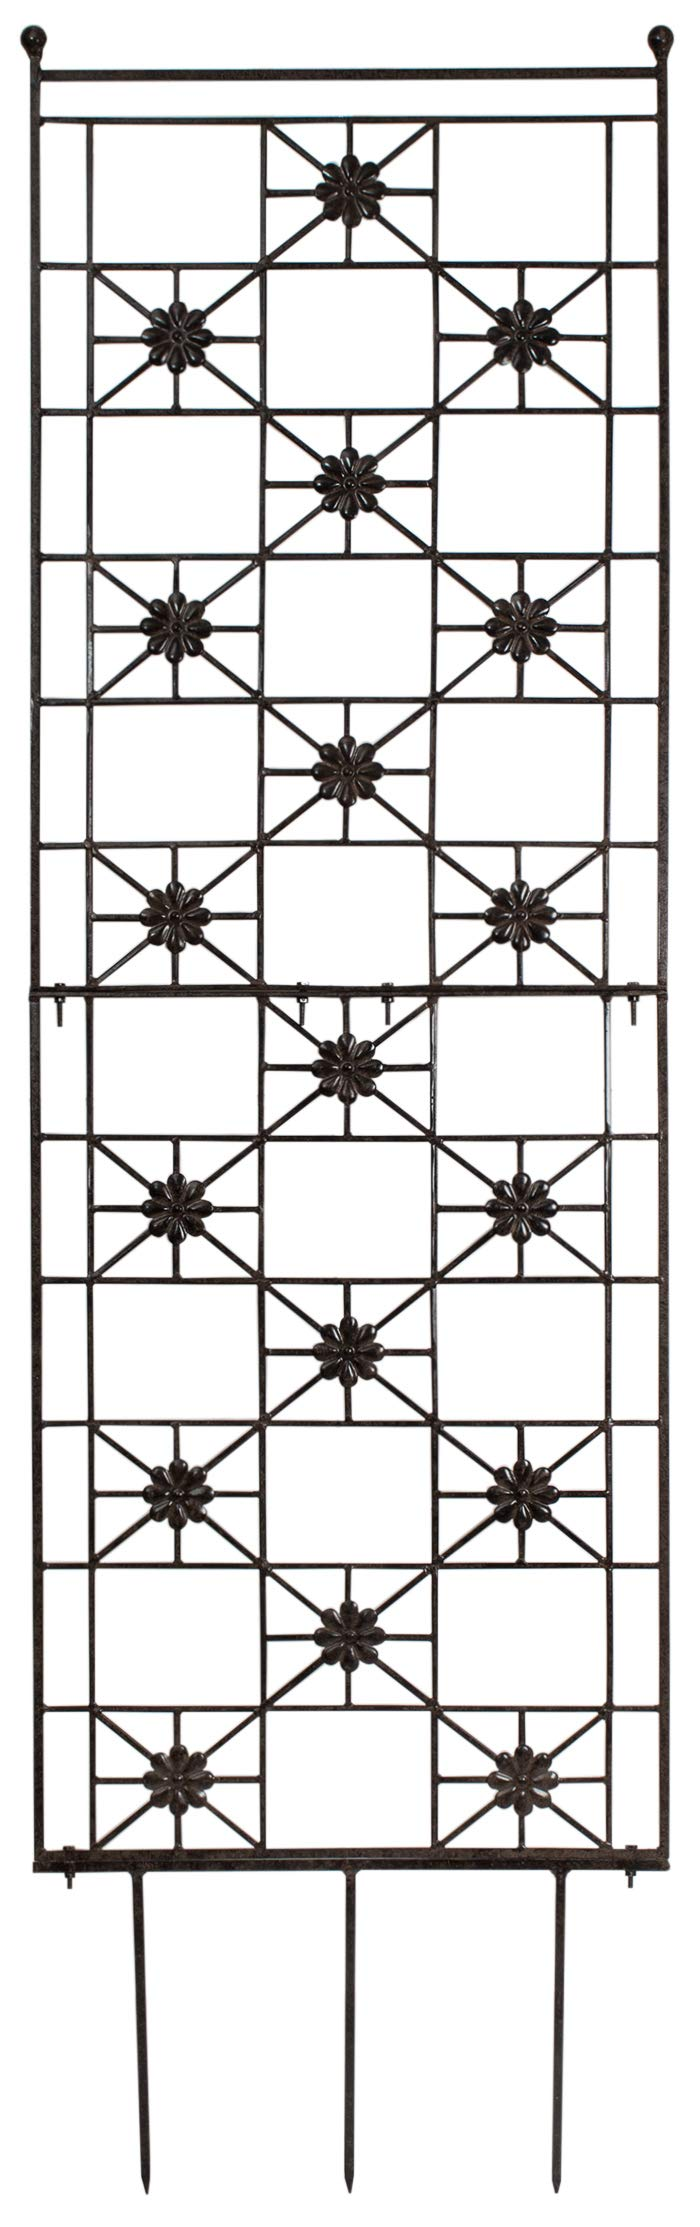 H Potter 5.5 Foot Tall Garden Flower Trellis Wrought Iron Heavy Scroll Metal Decoration Lawn, Patio & Wall Decor Screen for Rose, Clematis, Ivy Patio Deck Wall Art by H Potter (Image #1)